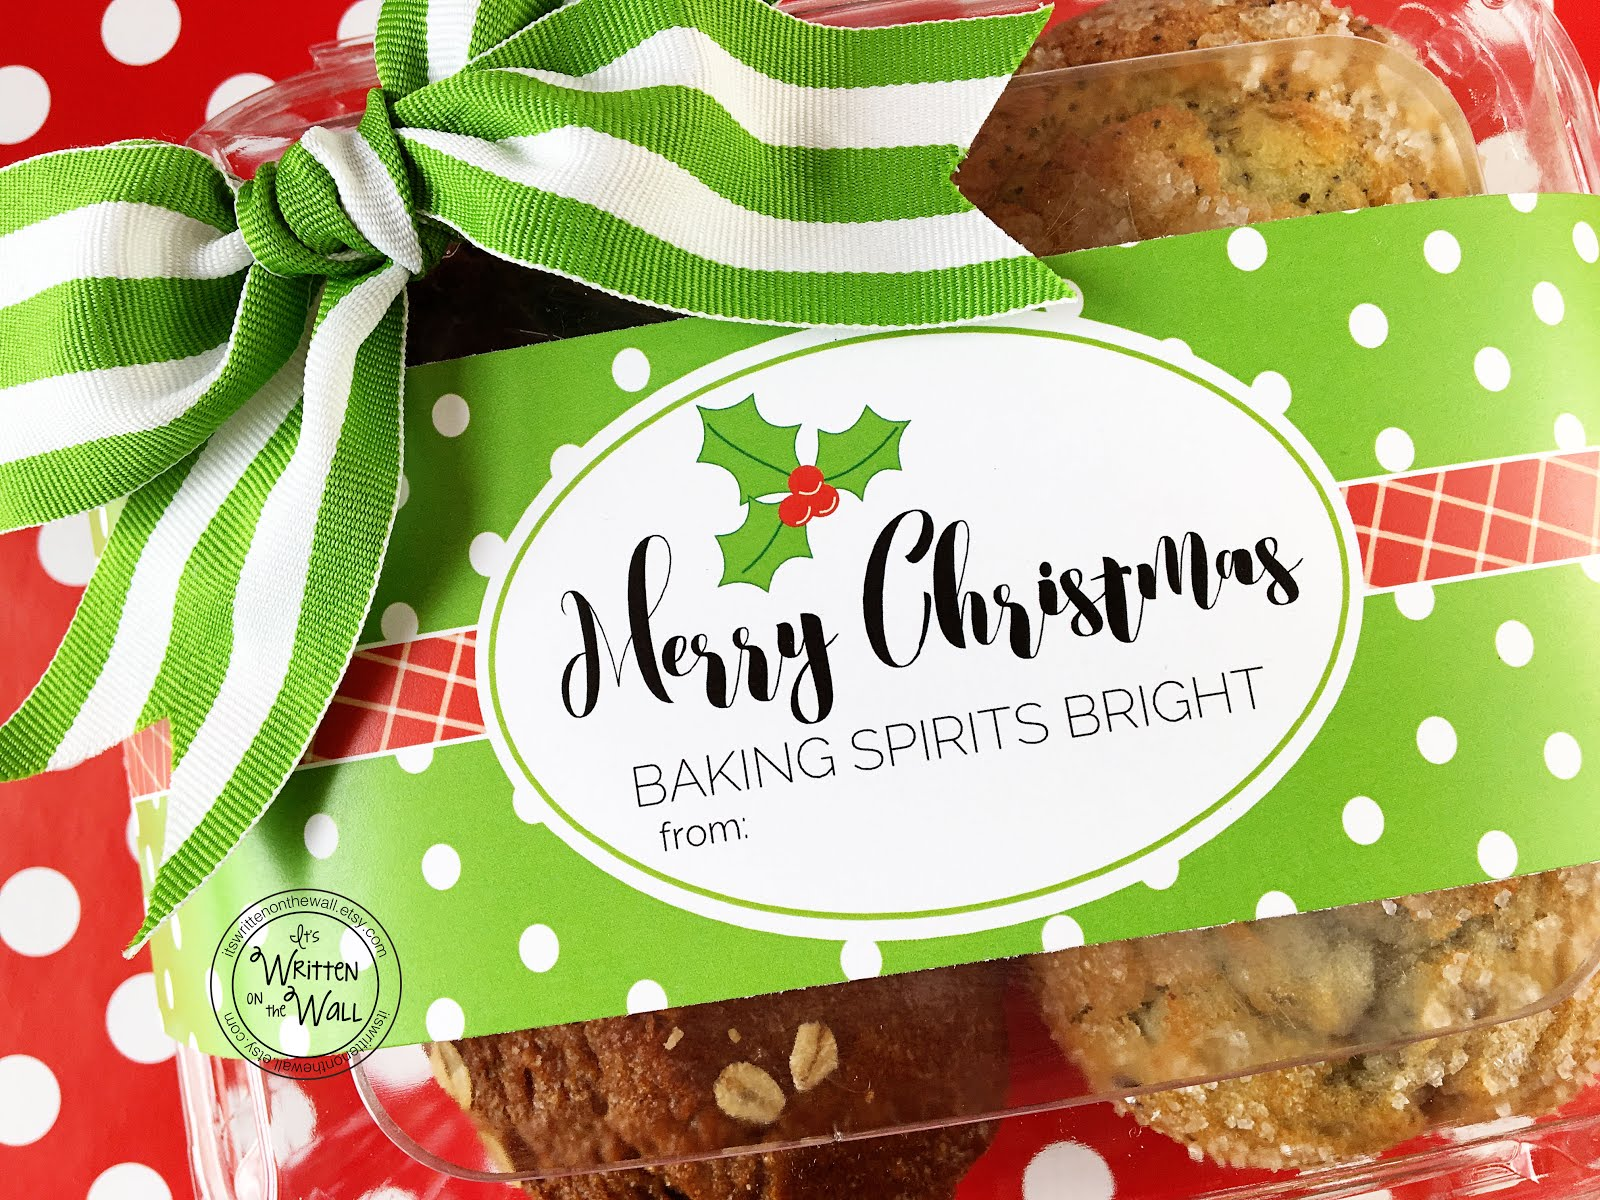 Baking Spirits Bright Food Tags